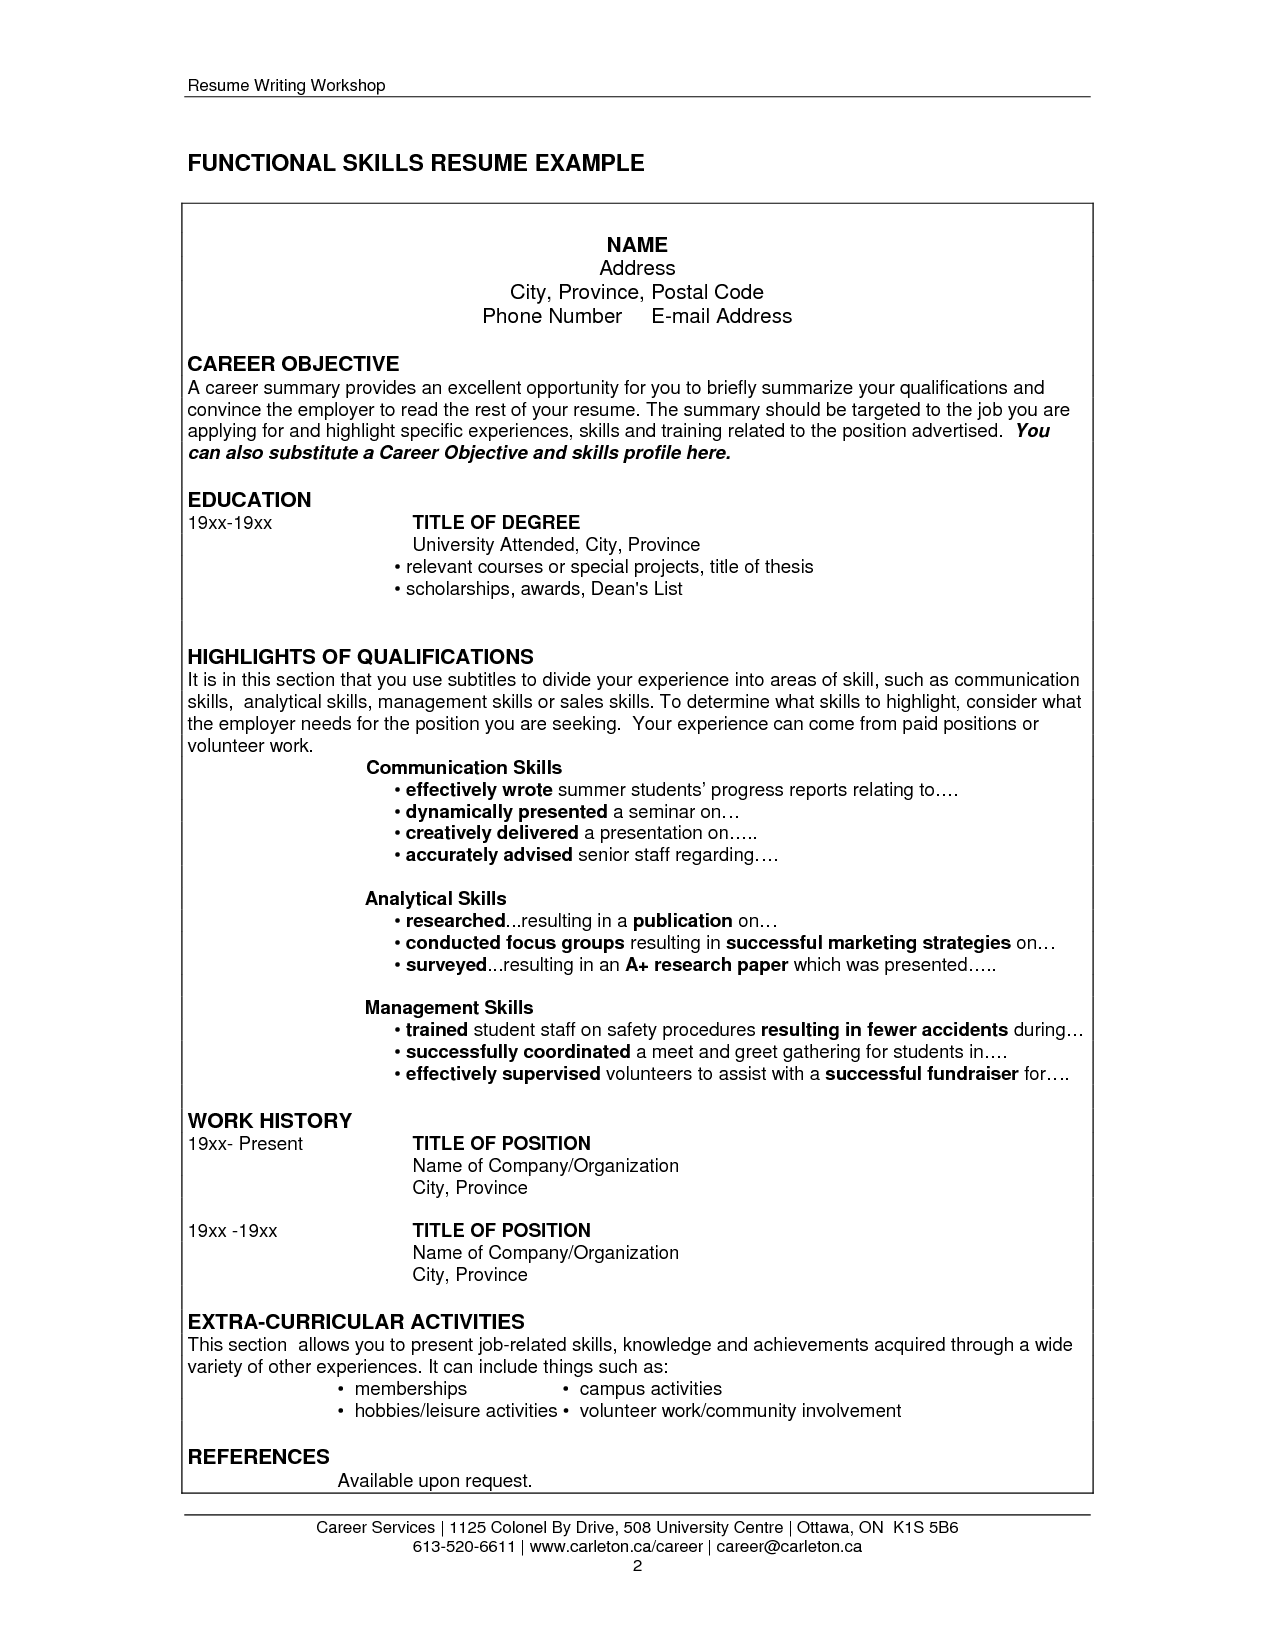 Resume Templates Tamu Prepossessing Image Result For Skills Resume Format  Business  Pinterest